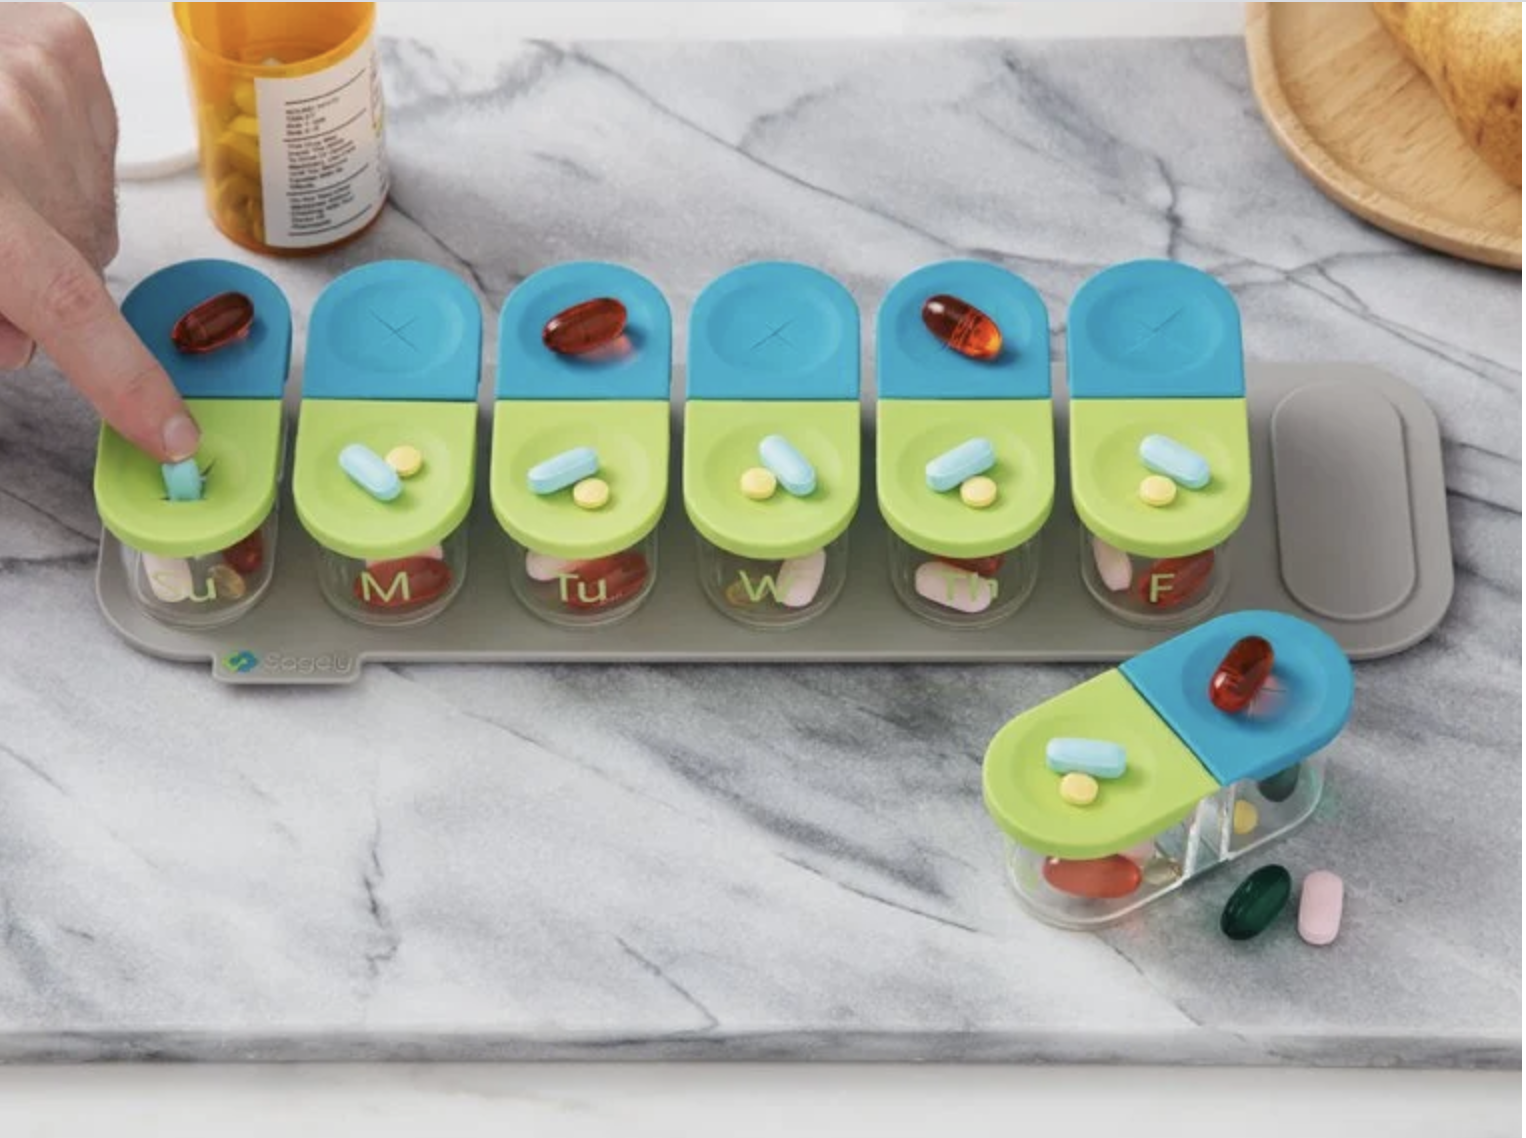 A set of seven transparent pill bottles with blue and green silicone lids dividing day and night propped on a gray magnetic holder